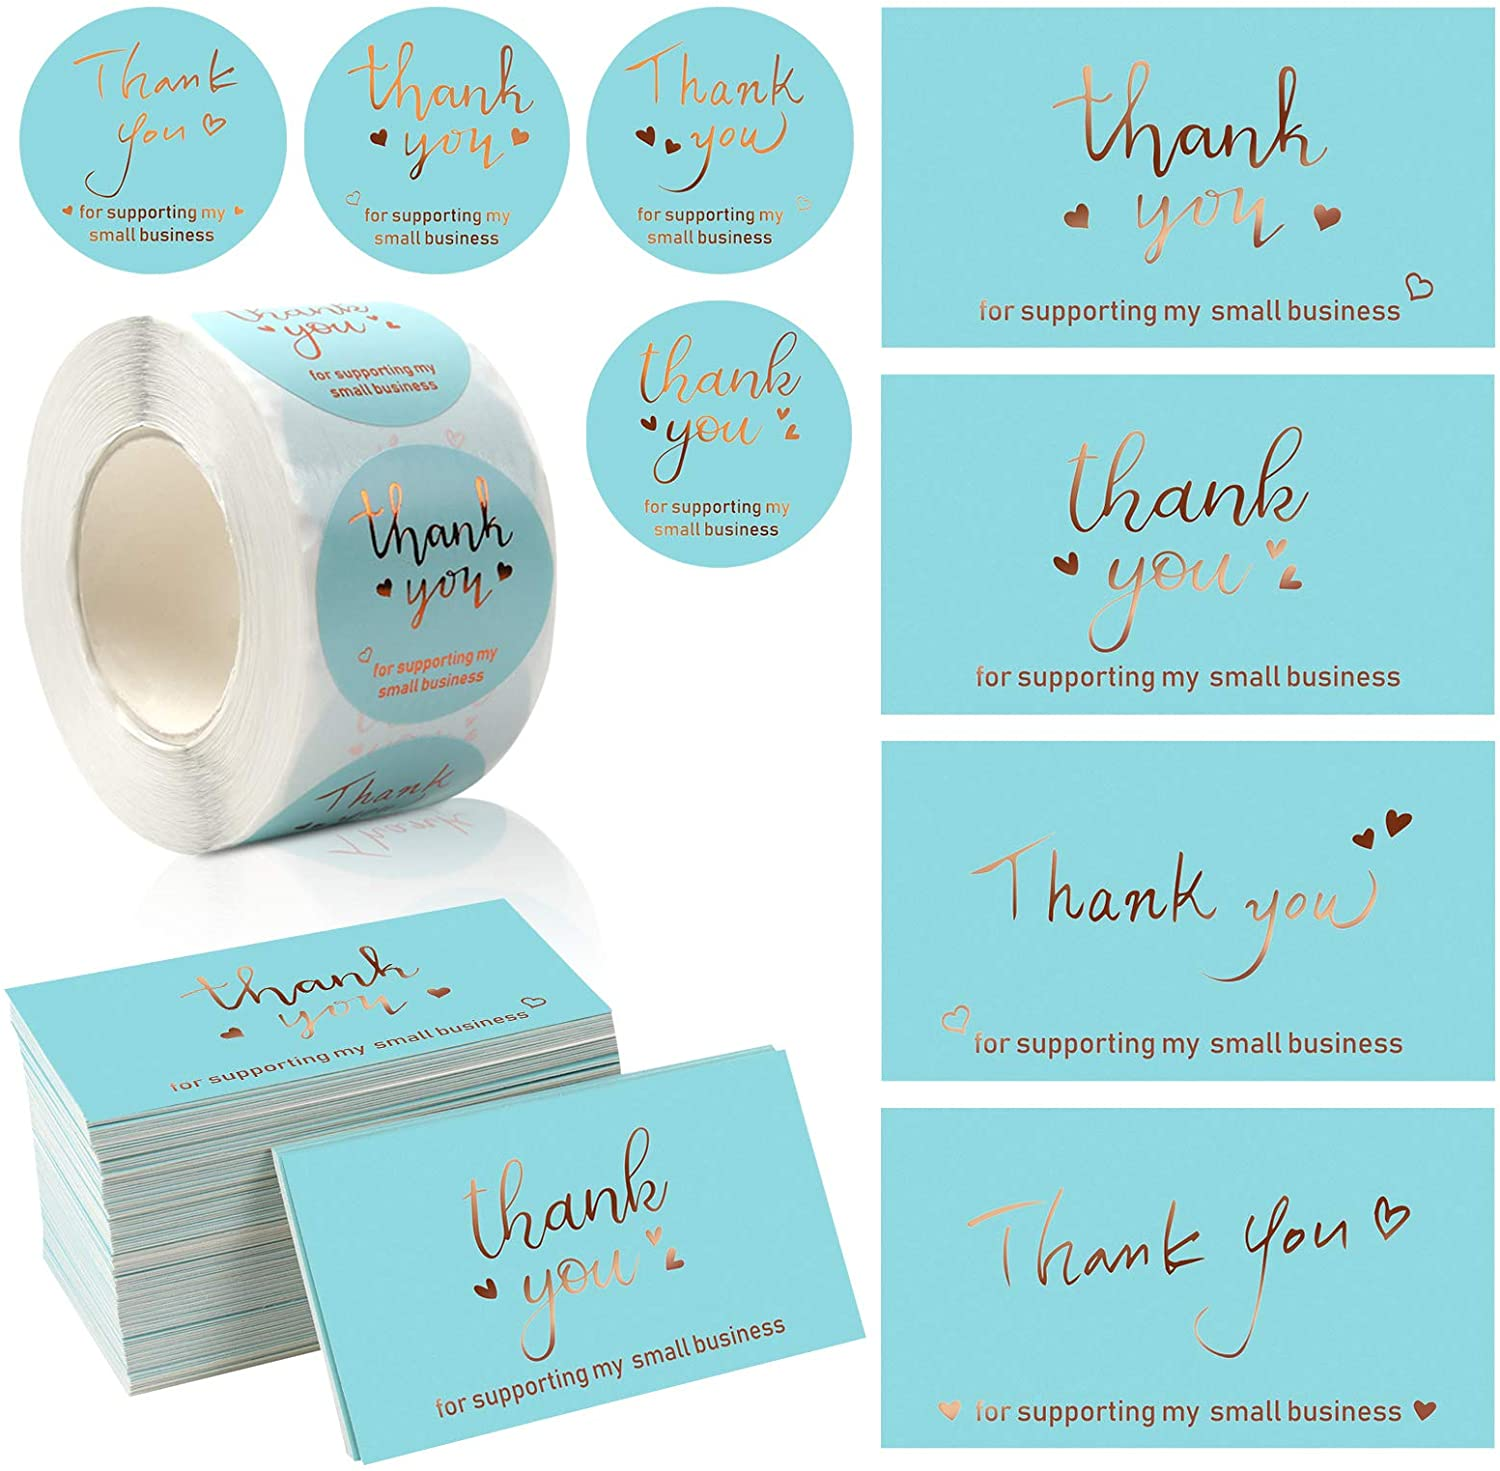 120 Pieces Thank You Card with 500 Sticker Label Roll, Gold Foil Greeting Cards, Thank You for Supporting My Small Business Card Set for Package Insert, Envelope Seals, Small Business Owner Need : Office Products